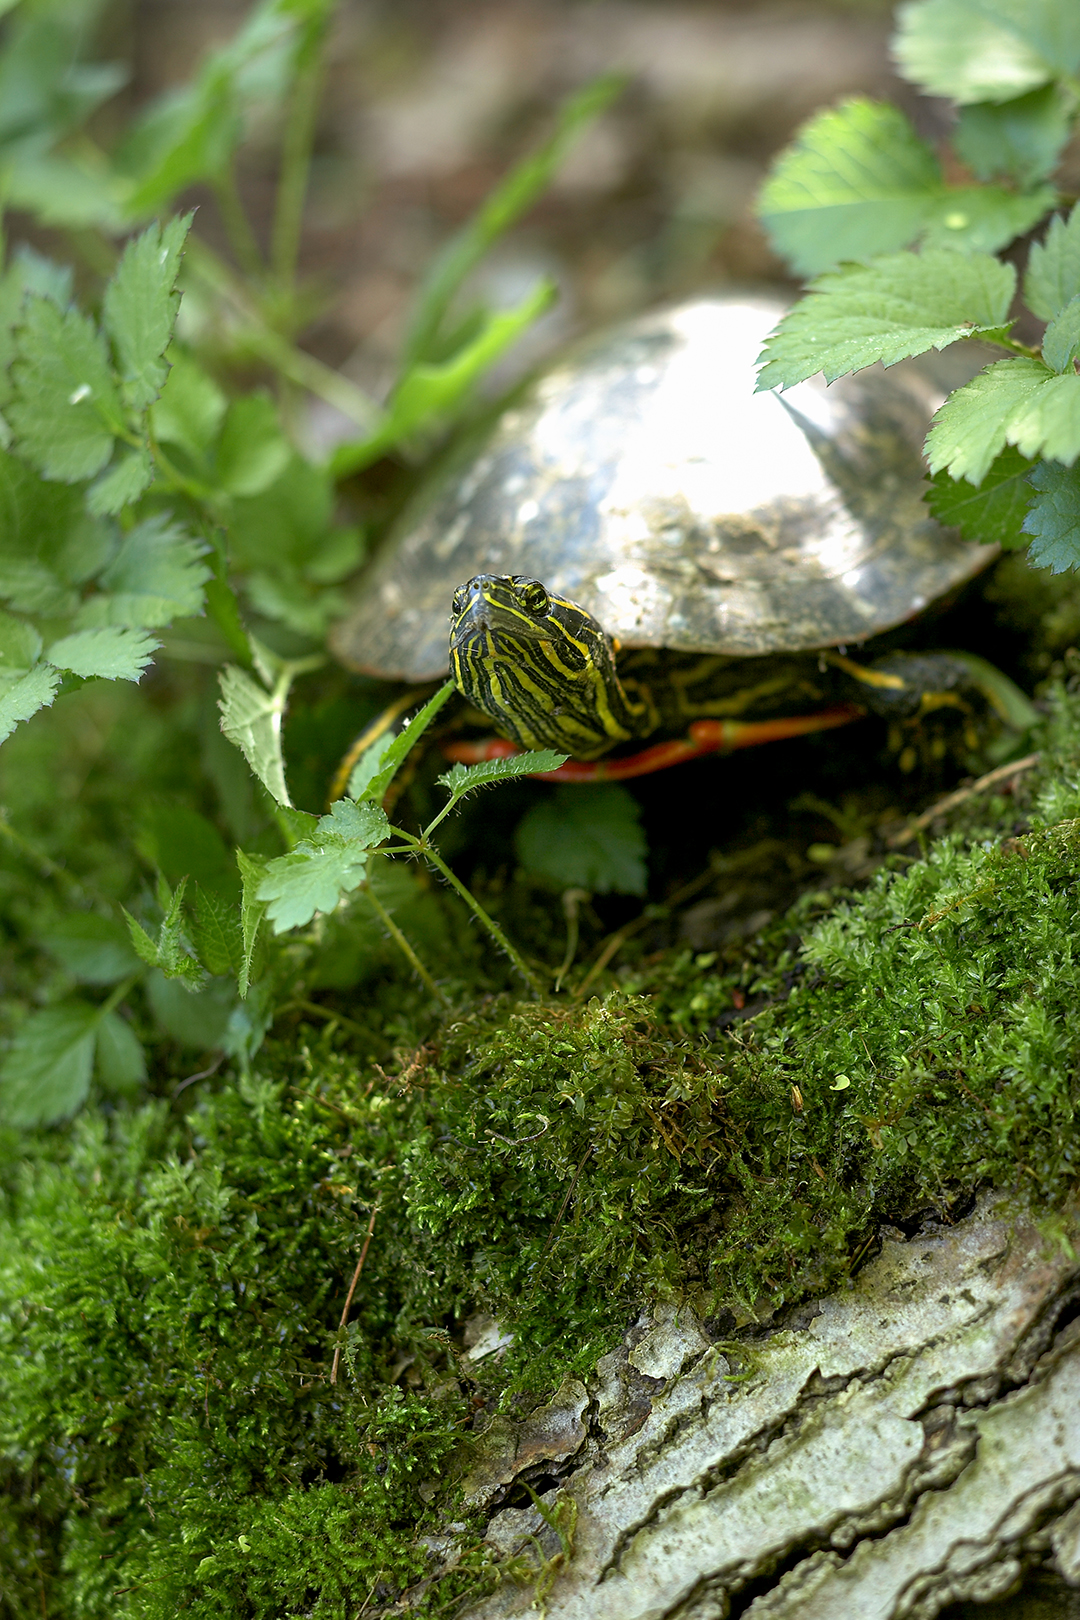 mossy tree branch with turtle on top